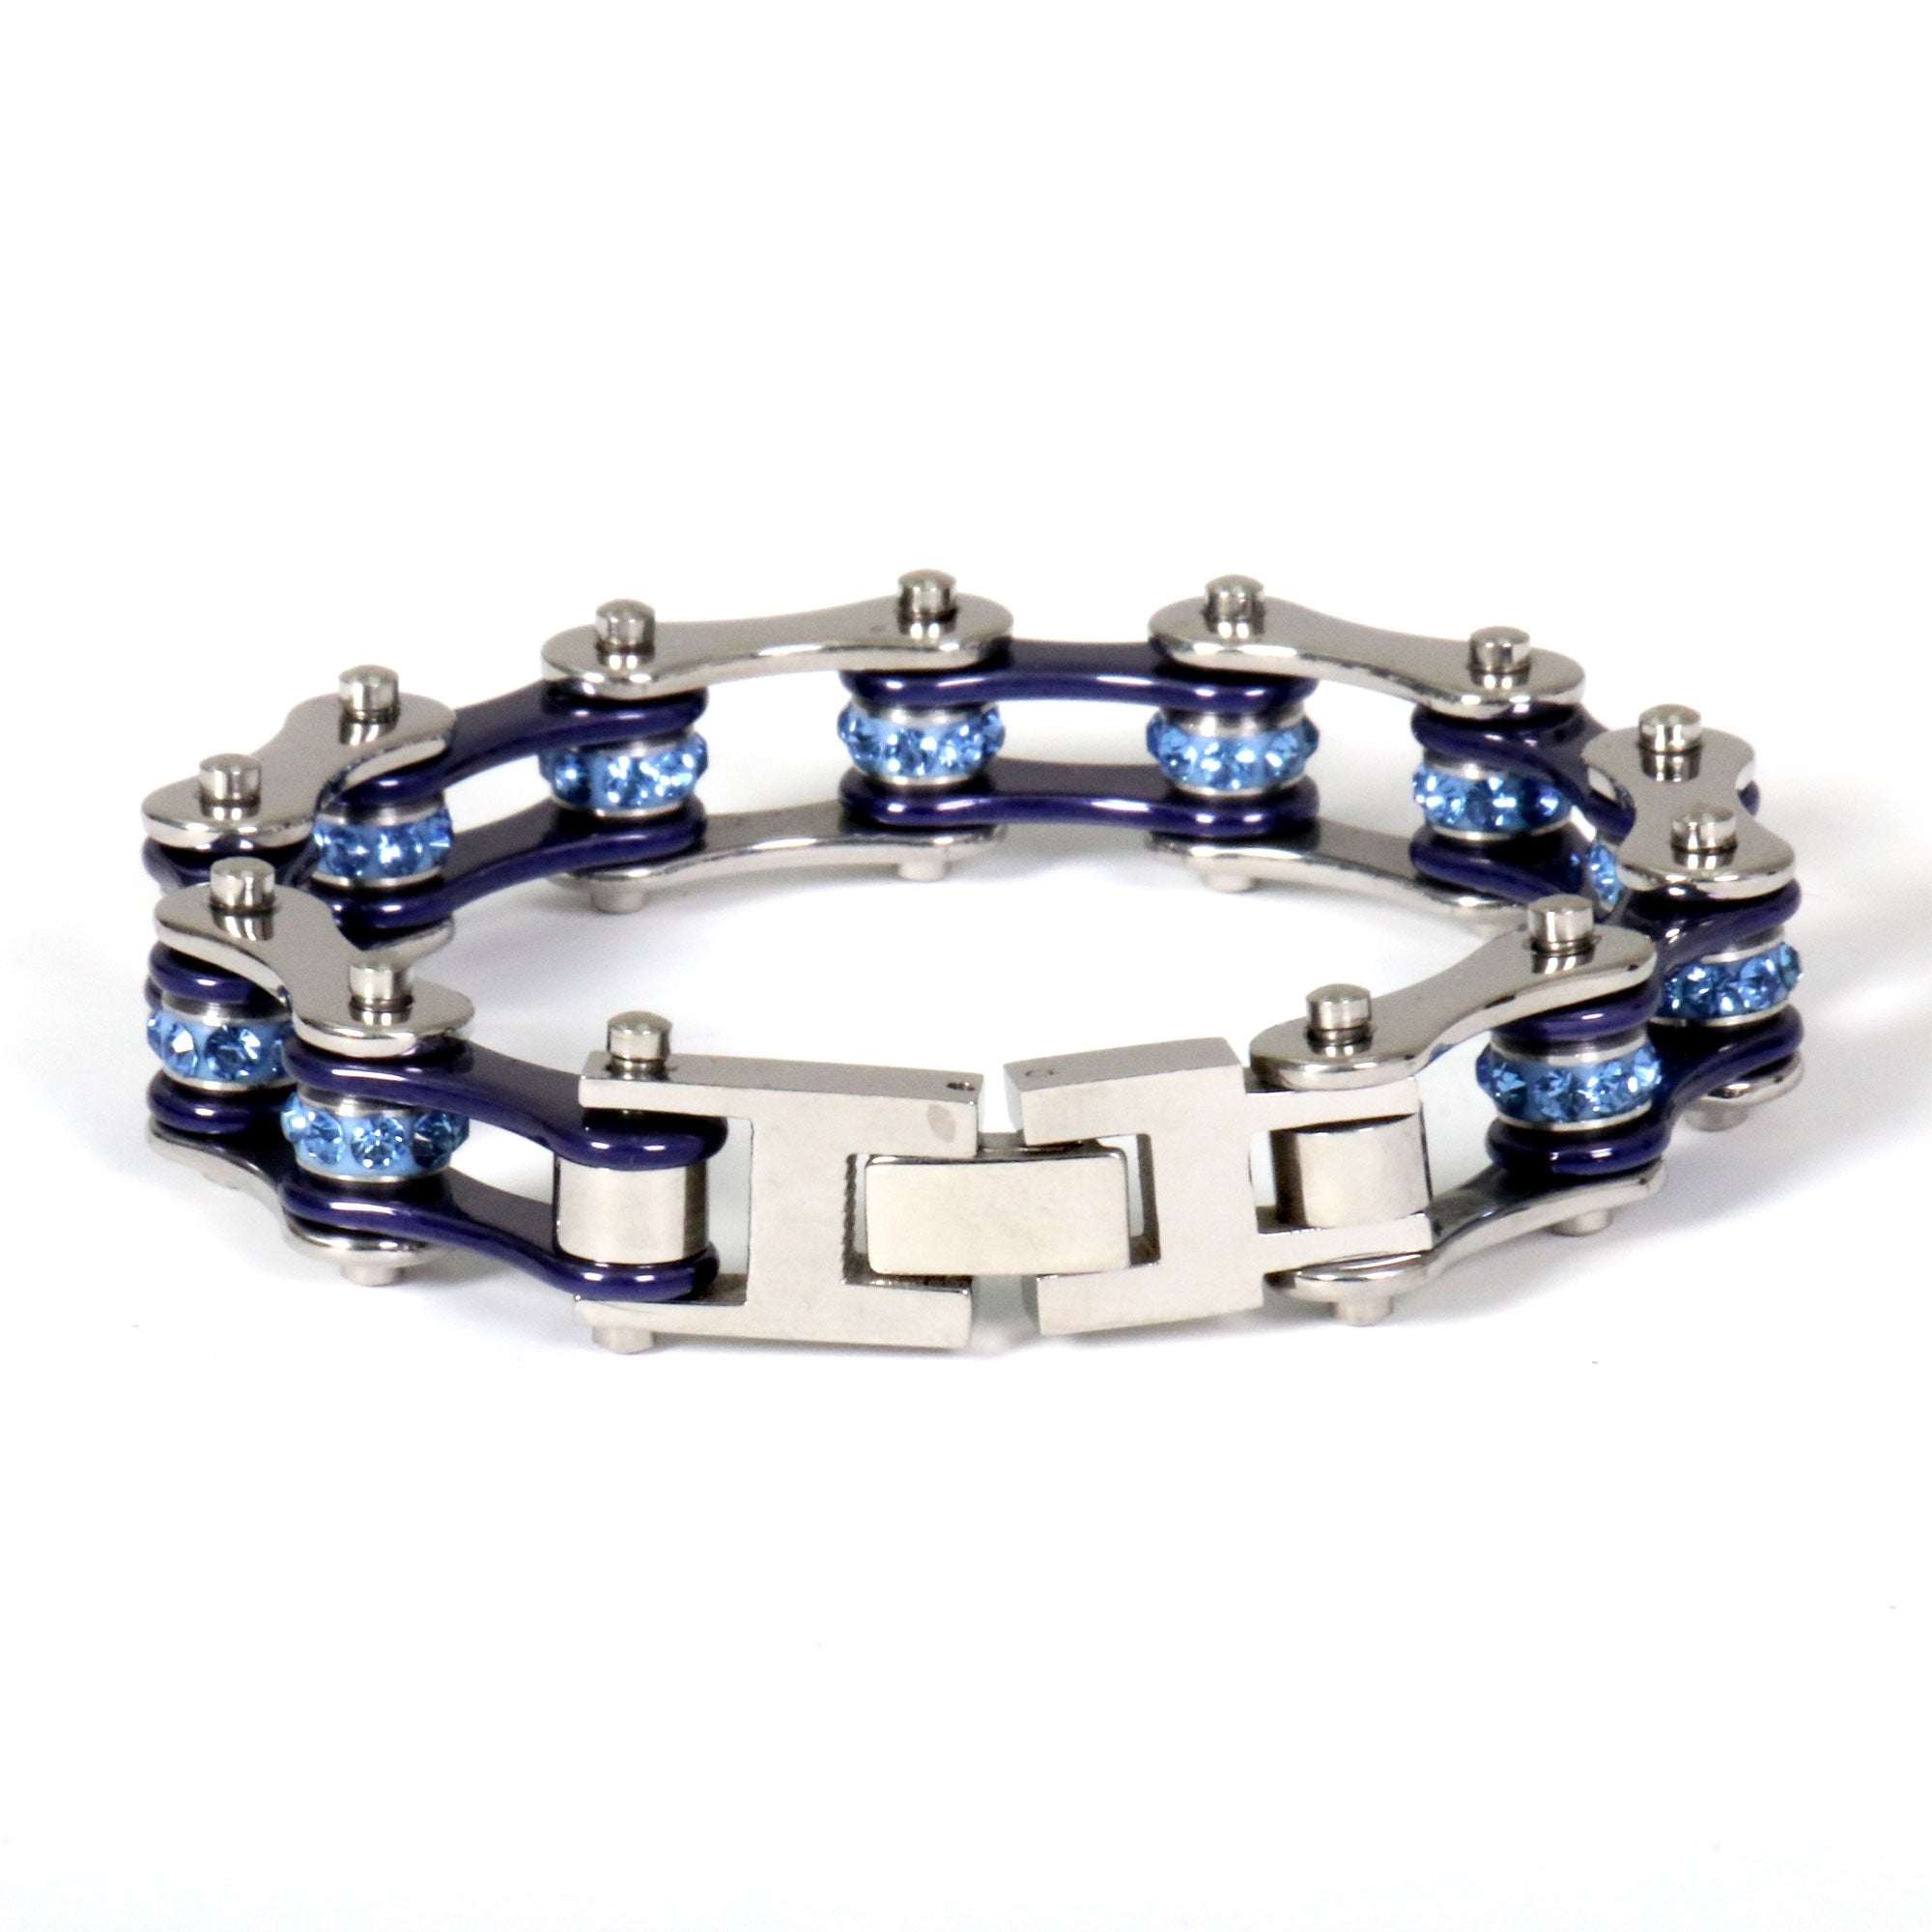 Hot Leathers Dark Blue Motorcycle Chain Bracelets